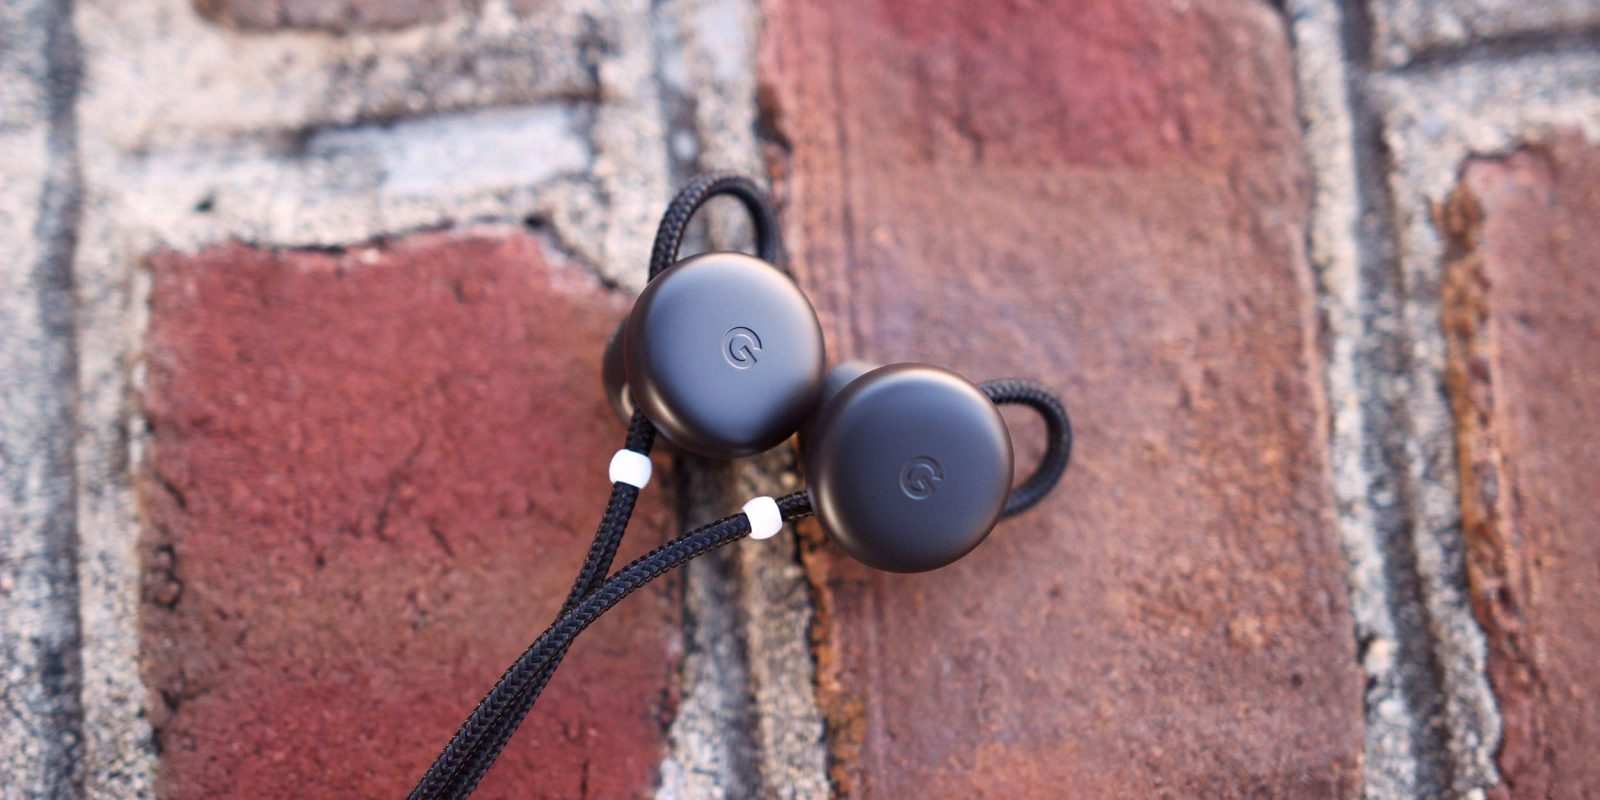 d2da932c472 Review: Google's Pixel Buds are the smartest earbuds you can buy, but with  some clear flaws